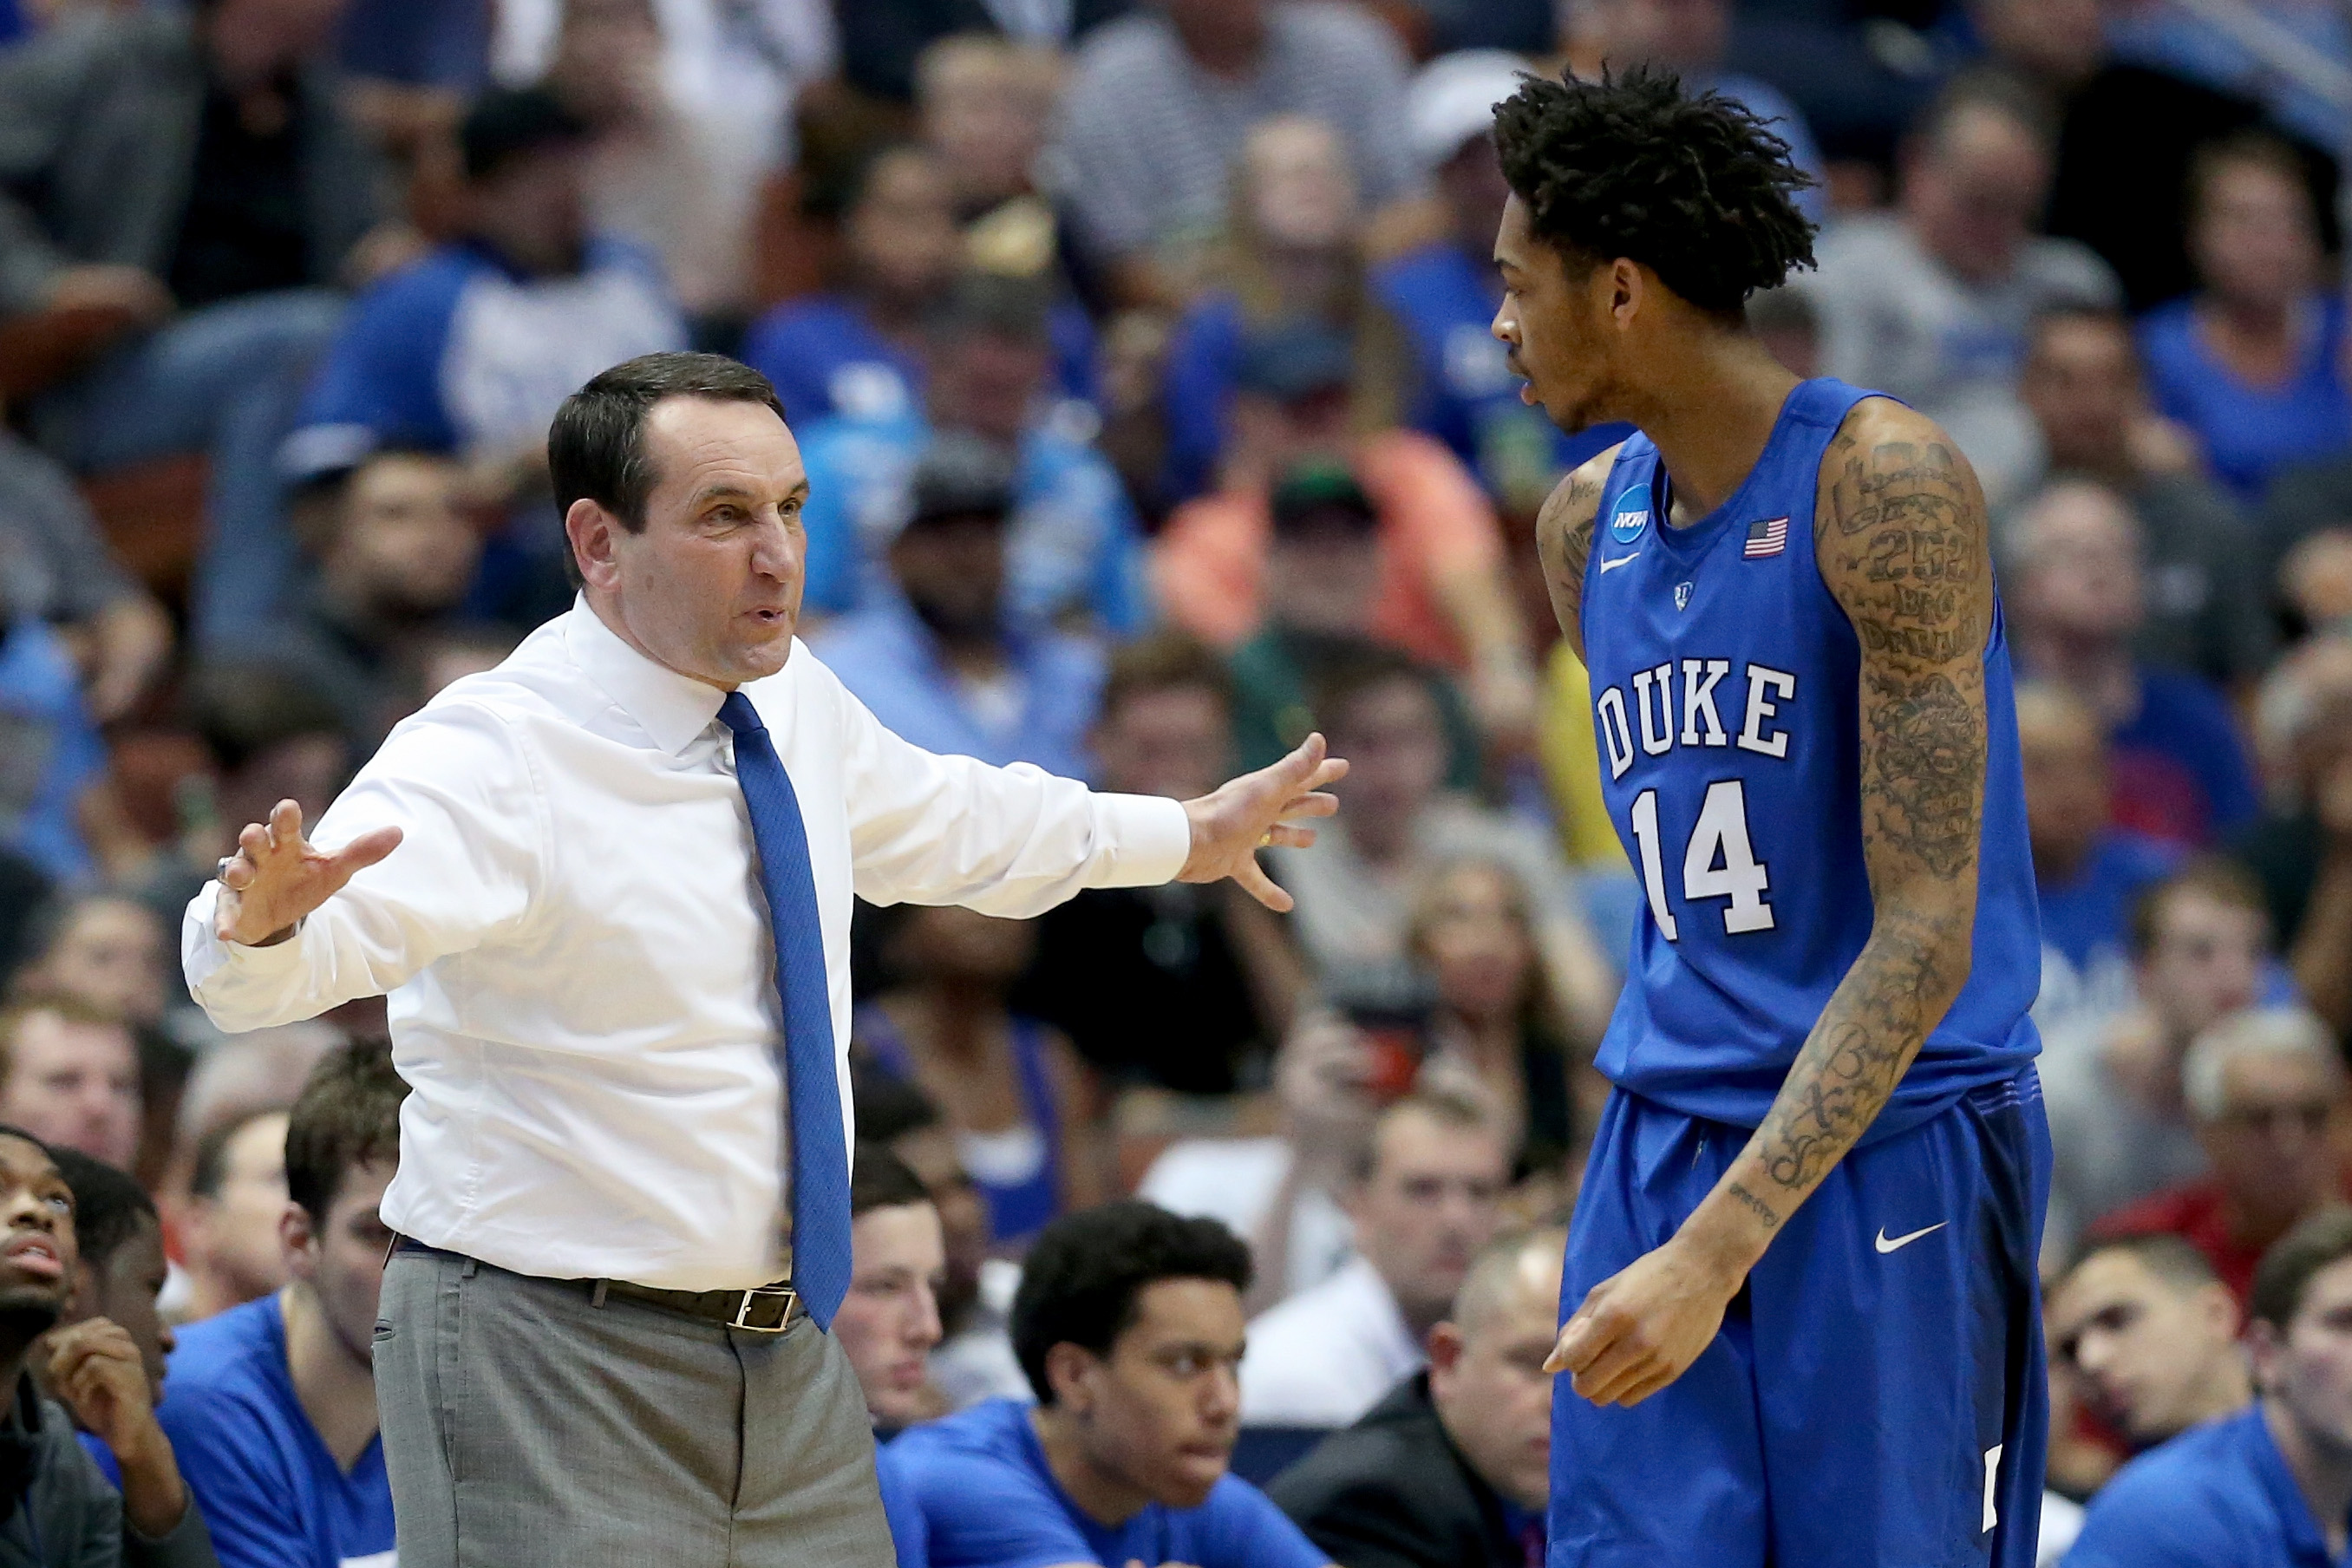 ANAHEIM, CA - MARCH 24: Head coach Mike Krzyzewski of the Duke Blue Devils talks with Brandon Ingram #14 in the first half against the Oregon Ducks in the 2016 NCAA Men's Basketball Tournament West Regional at the Honda Center on March 24, 2016 in Anaheim, California. (Photo by Sean M. Haffey/Getty Images)